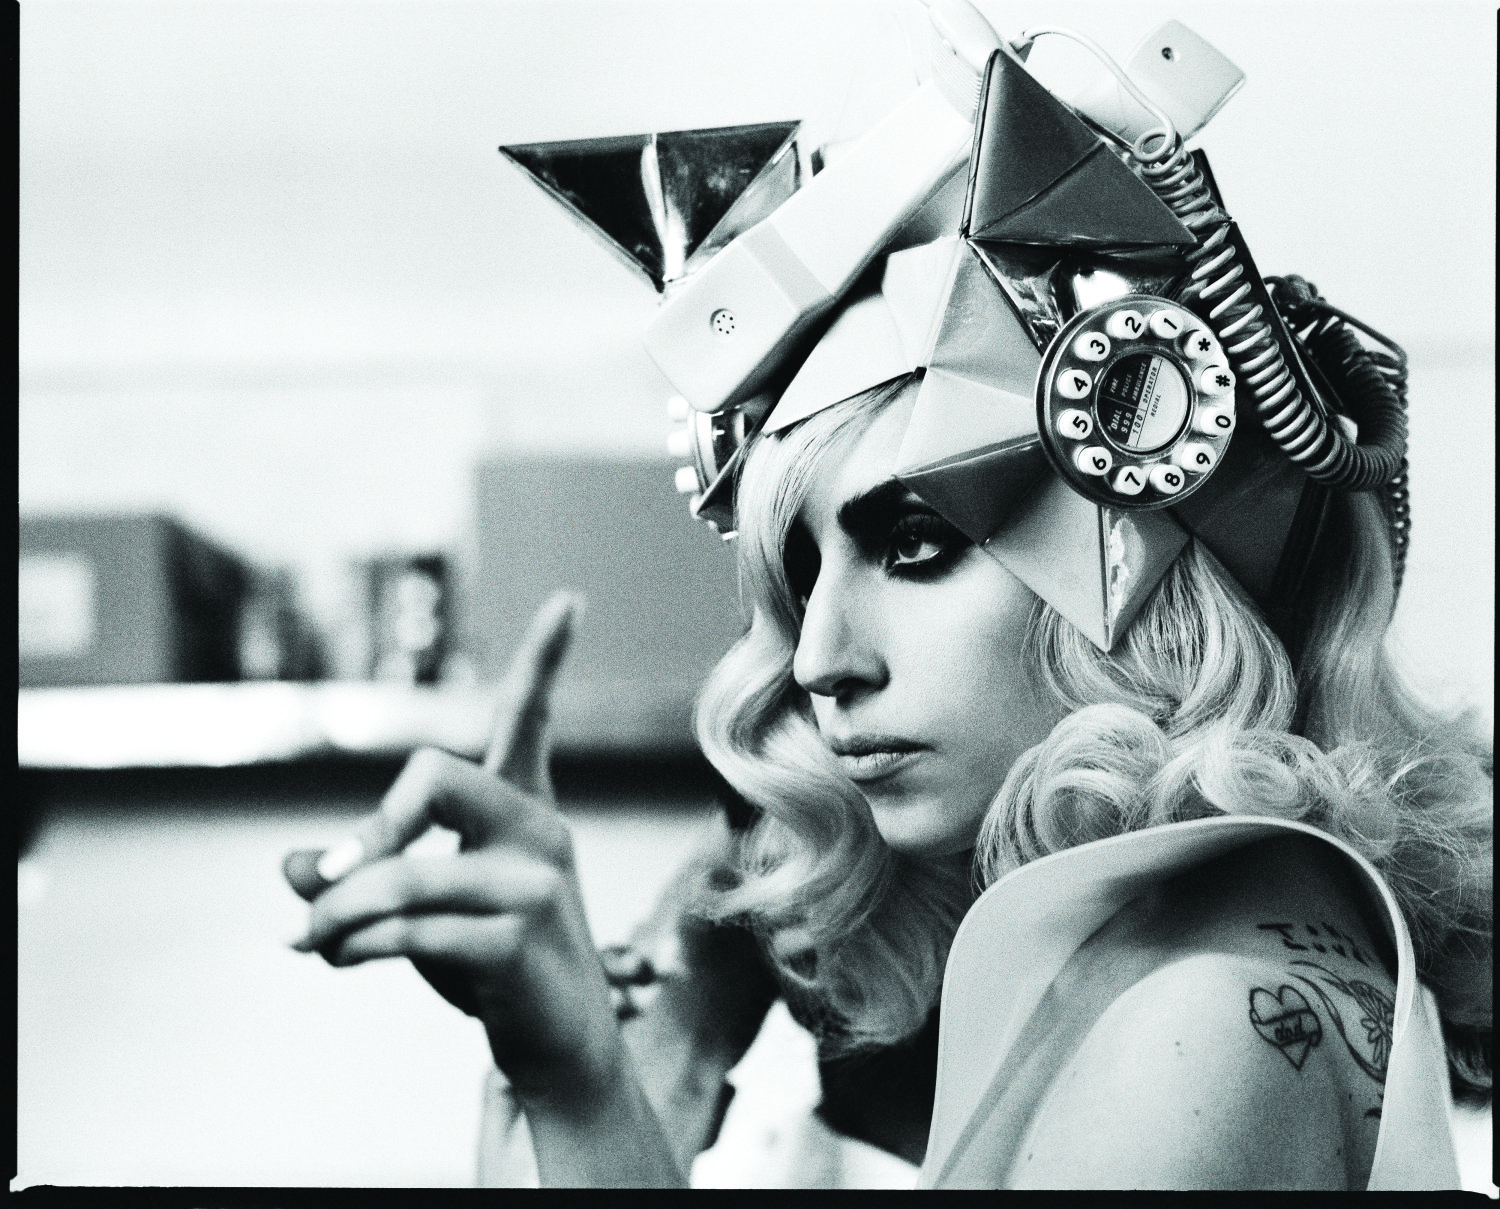 Lady Gaga Telephone 01 2010 - CMS Source.jpg